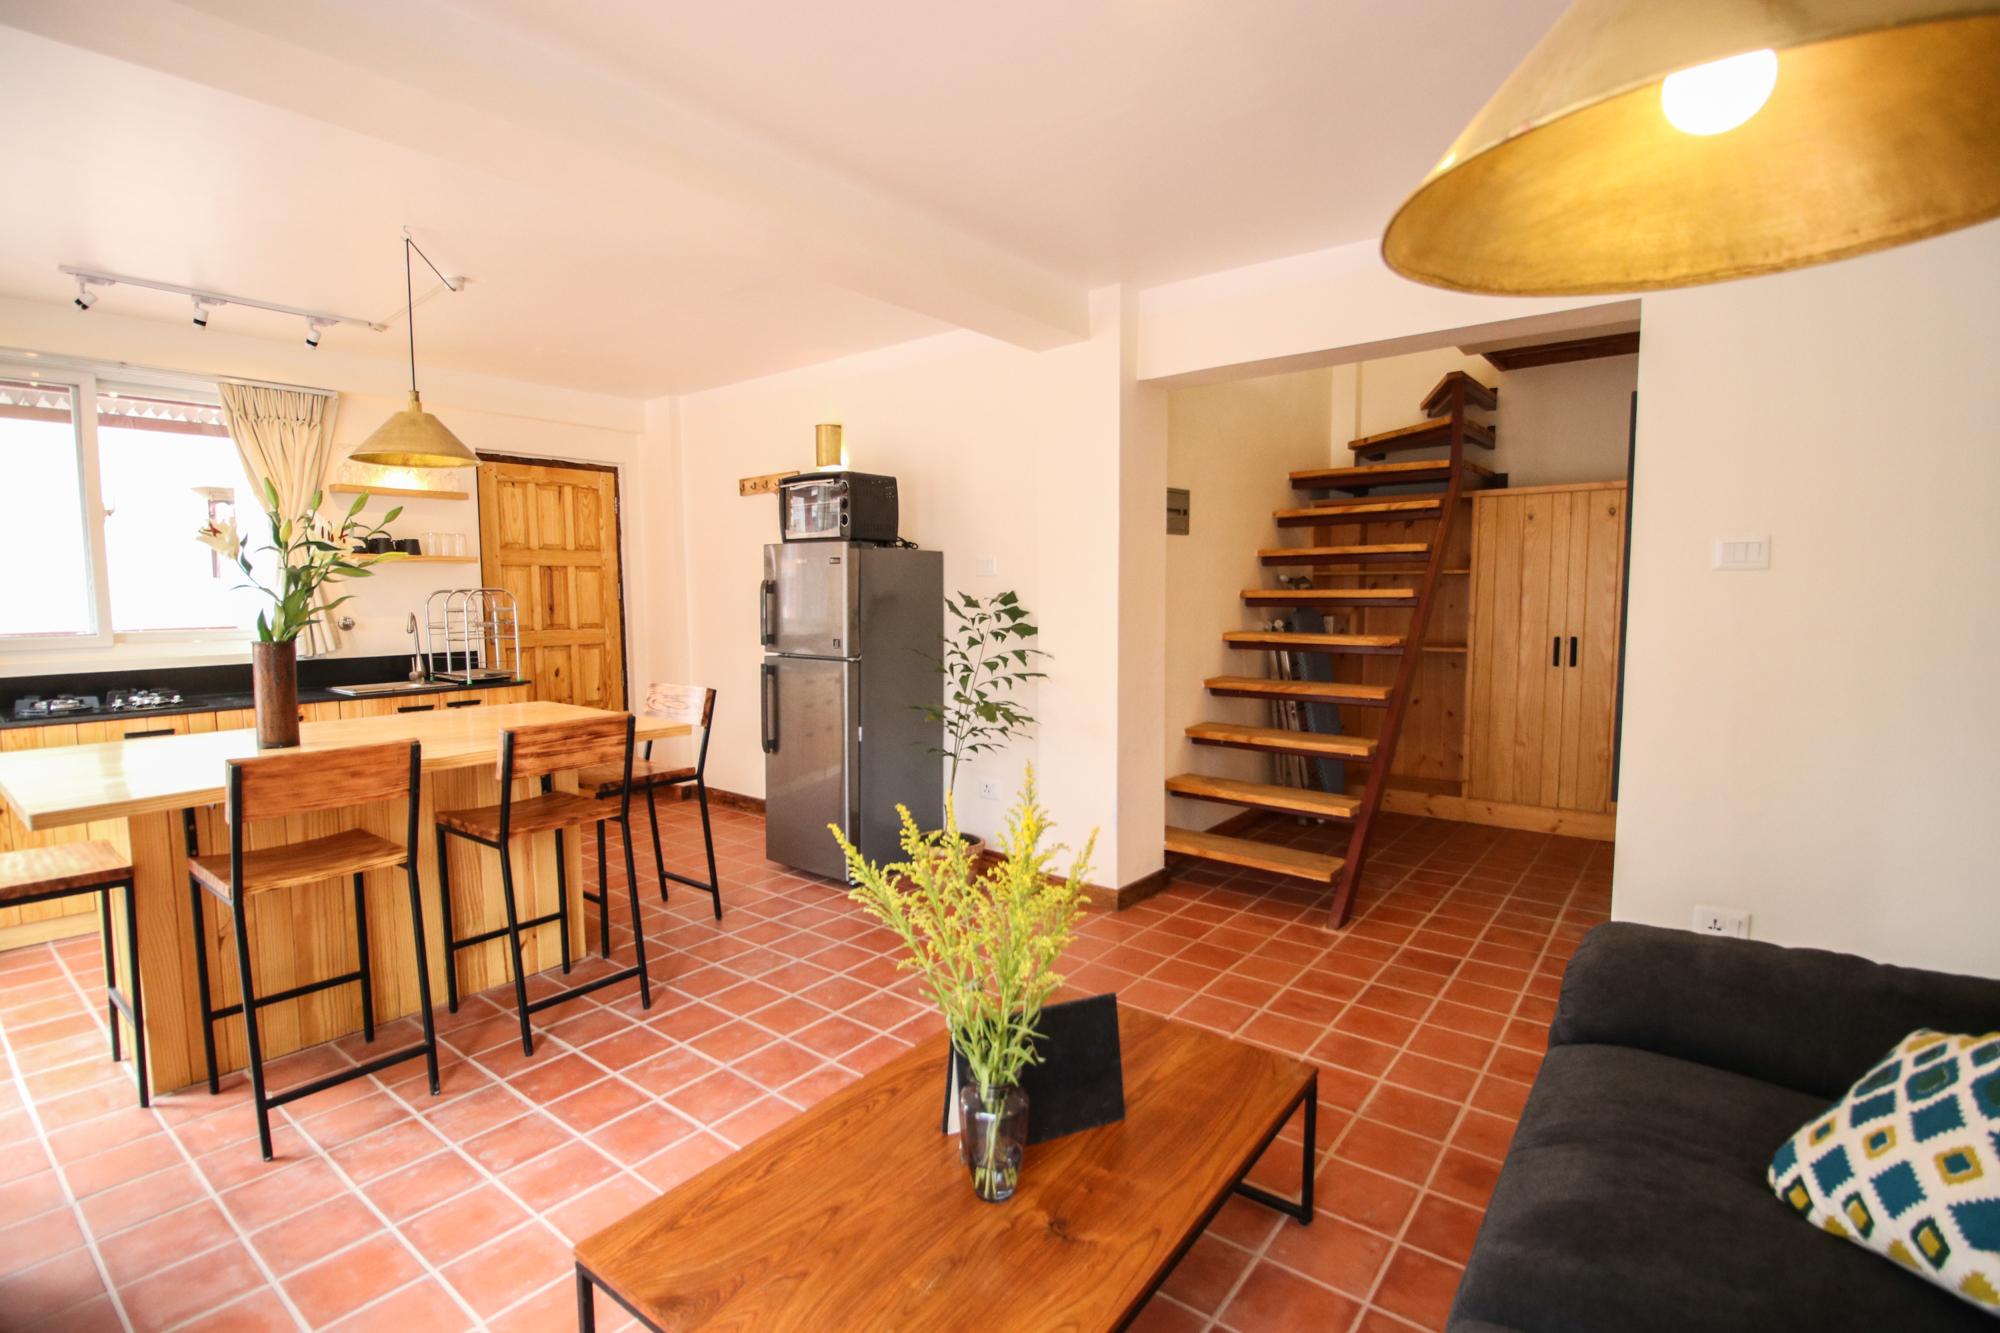 In the first floor of Roof Top Duplex there you have well equipped kitchen along with small resting space with couch.